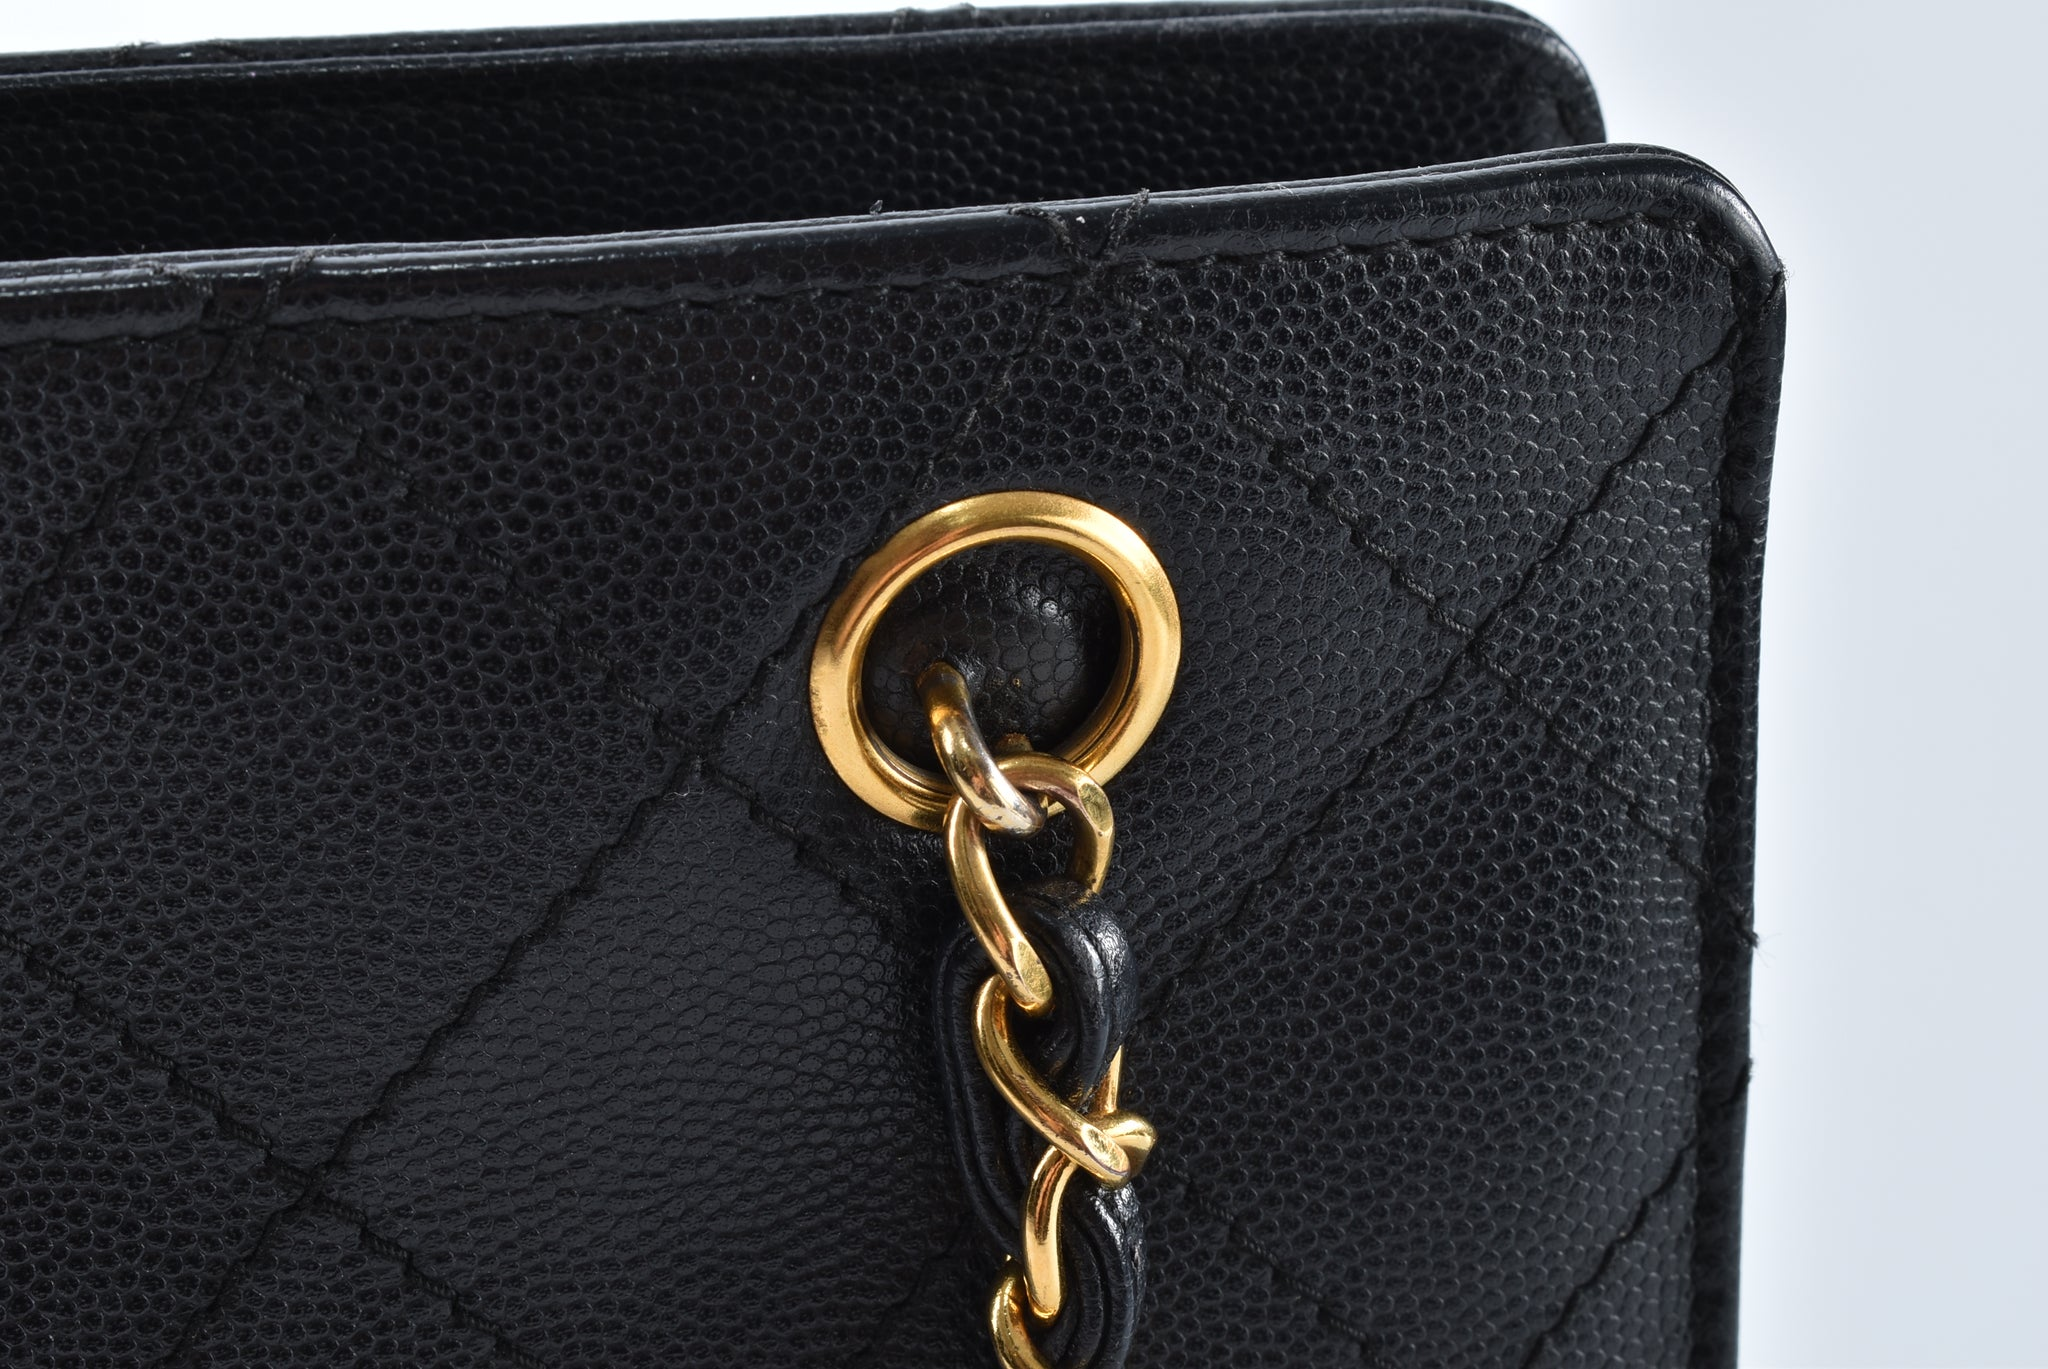 Chanel Vintage Black Caviar GHW Tote Bag - Glampot